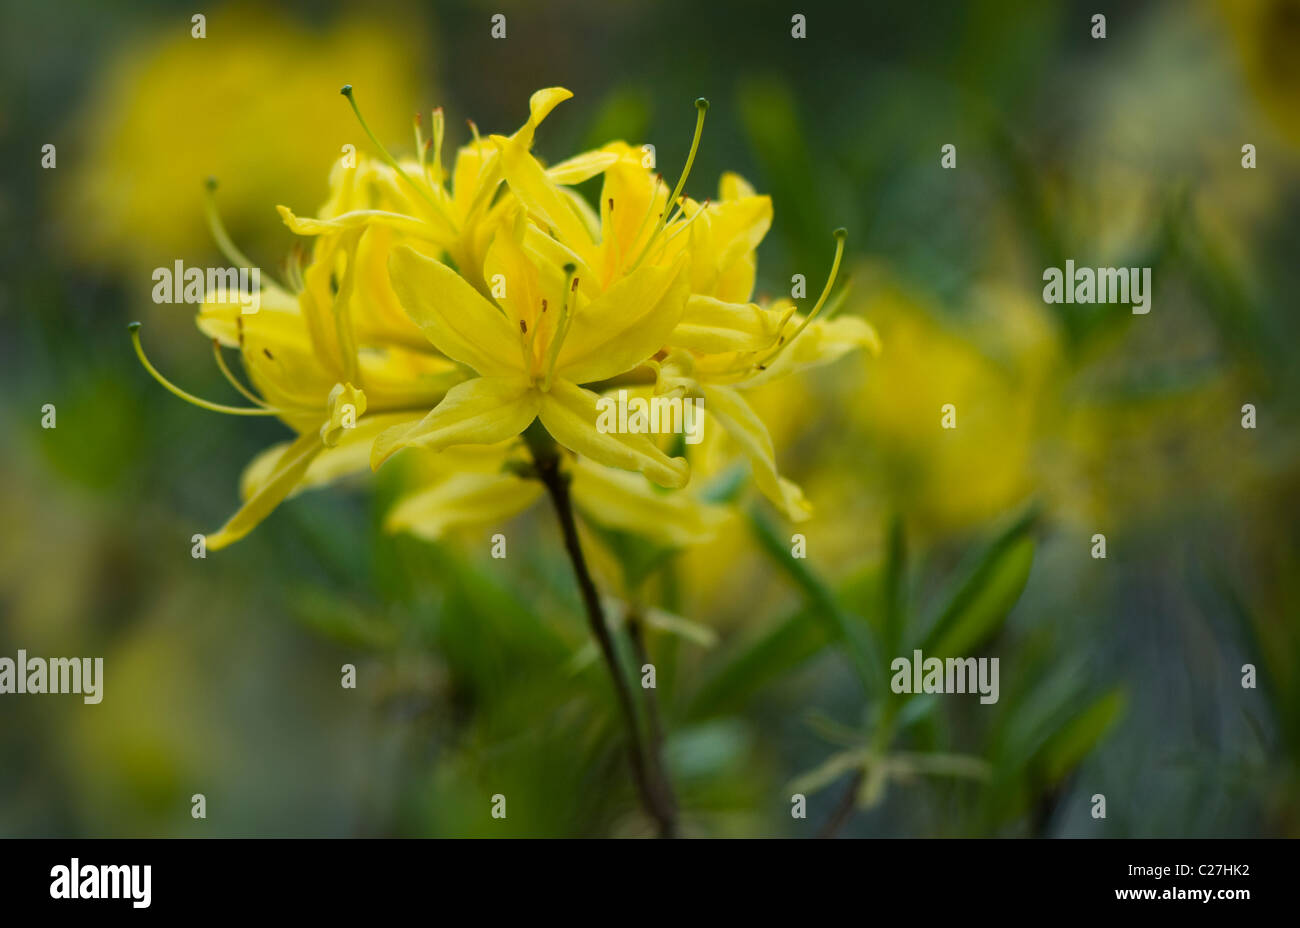 Azalea  Rhododendron Luteum - Yellow Azalea or Honeysuckle Azalea Stock Photo